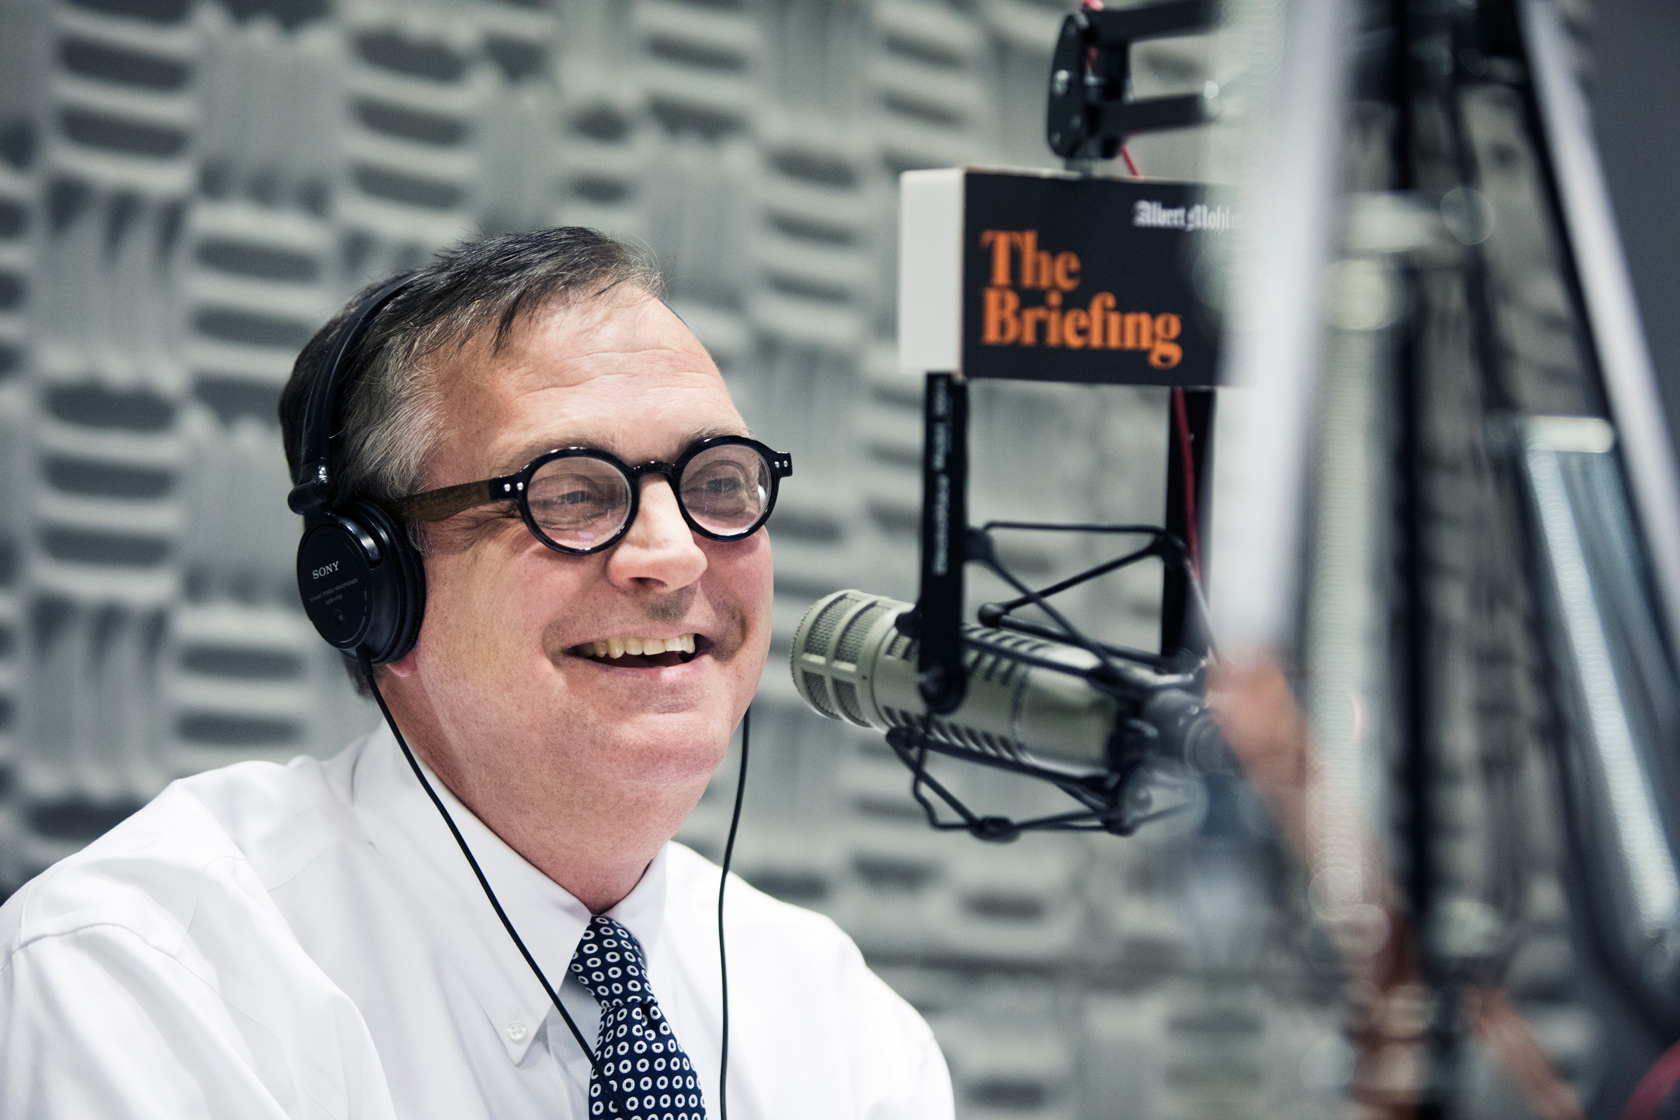 Mohler records The Briefing in his on-campus studio.